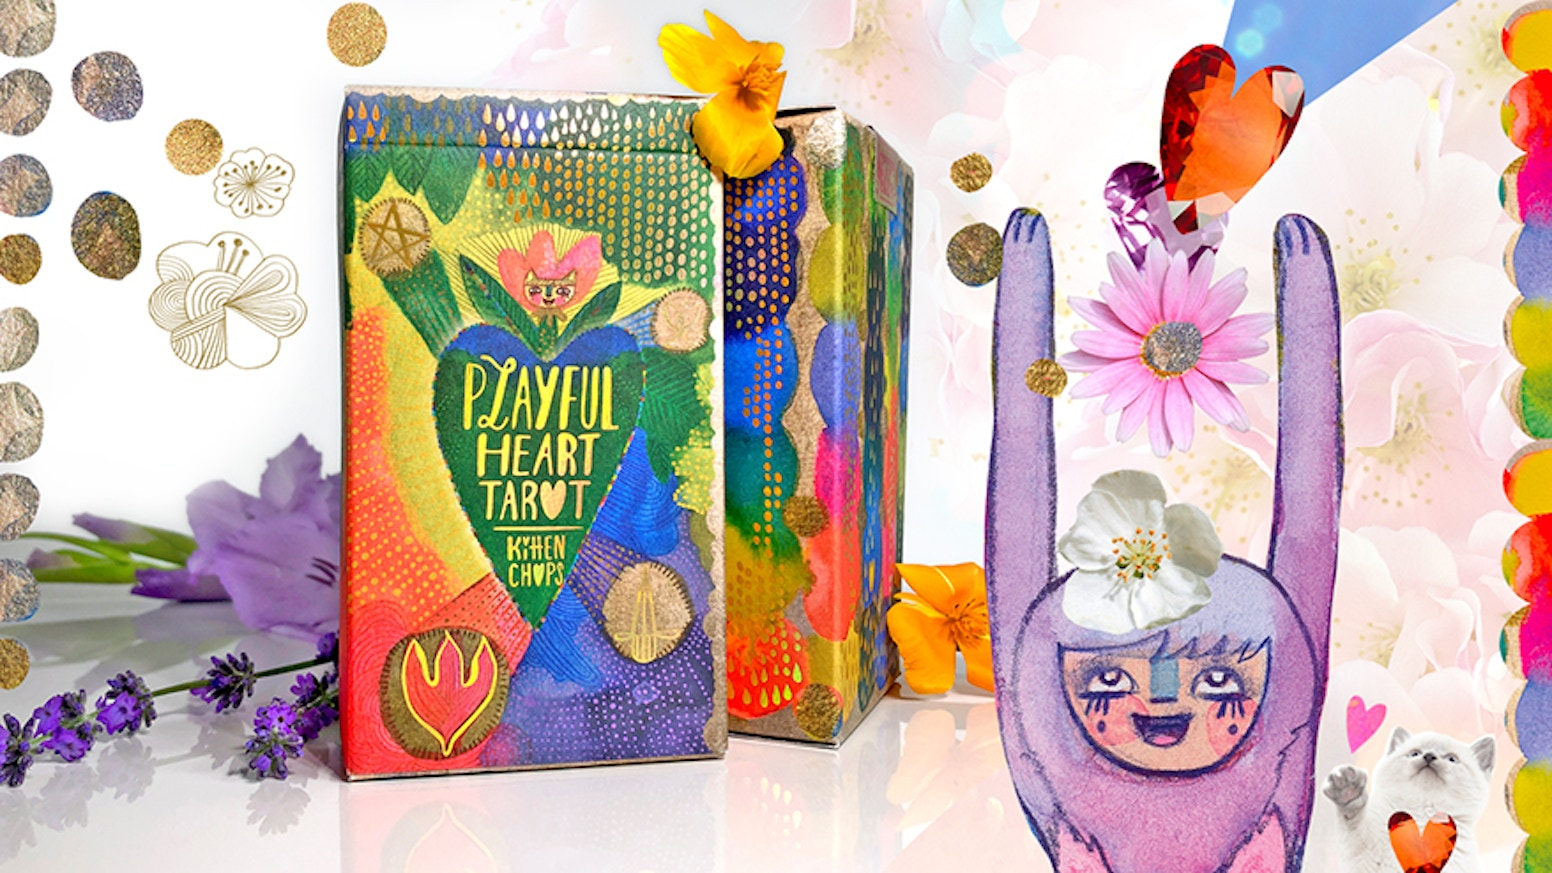 Instant divine, intuitive access to tarot wisdom via the Power of Cuteness for all ages.